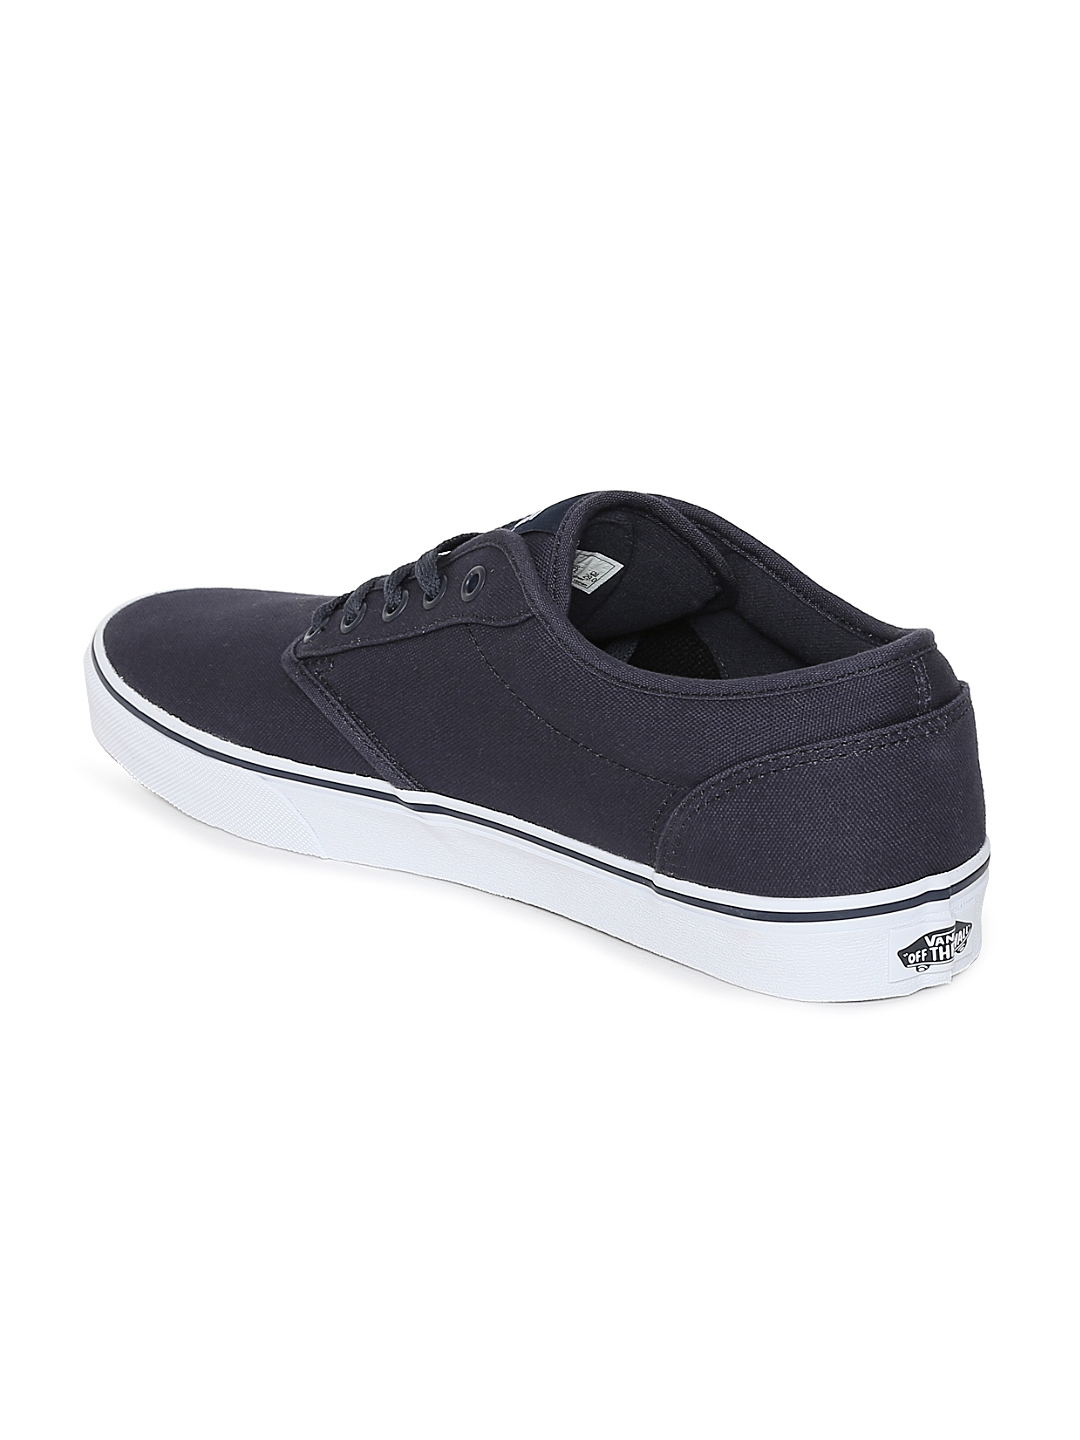 Buy Vans Men Navy Blue Atwood Sneakers - Casual Shoes for Men ... a01a651709